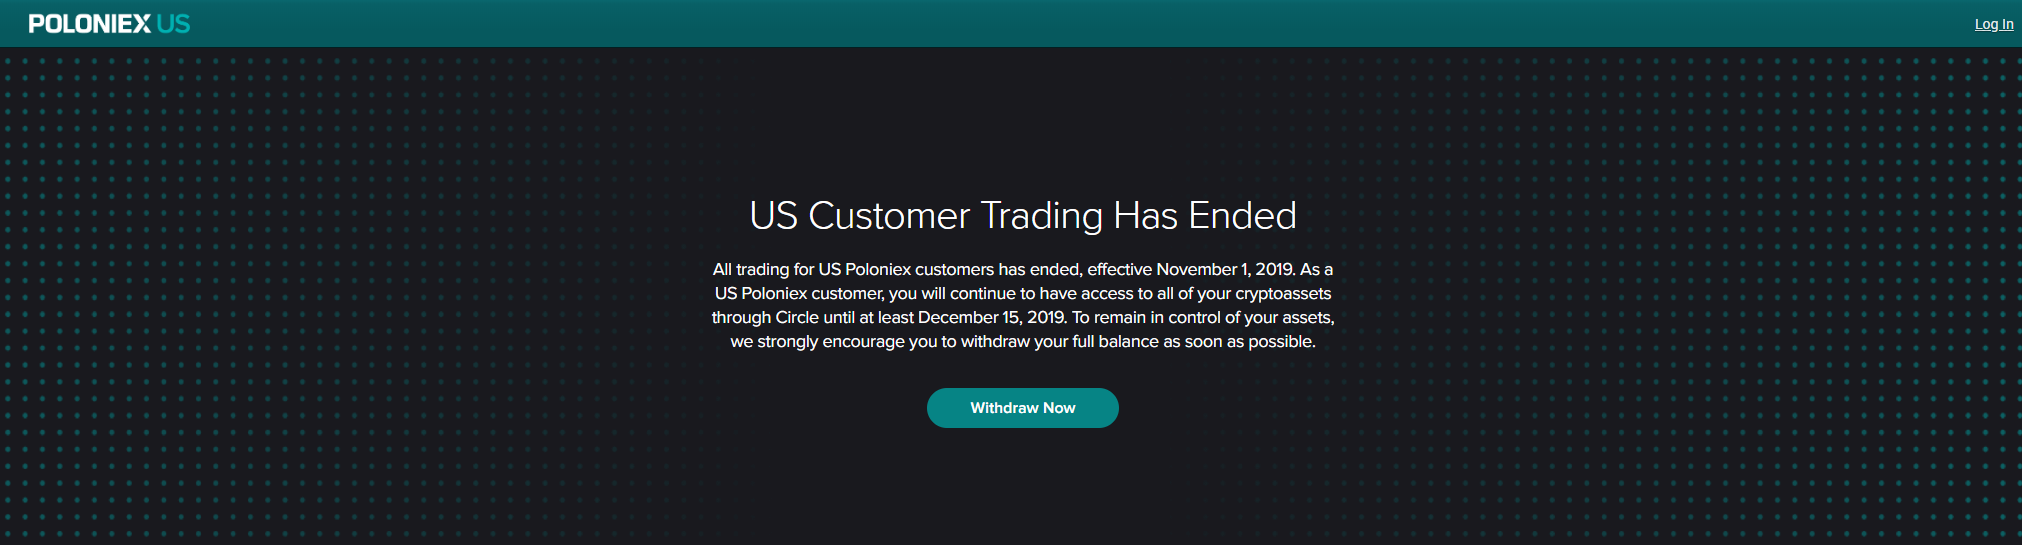 Poloniex Ends US Customer Trading